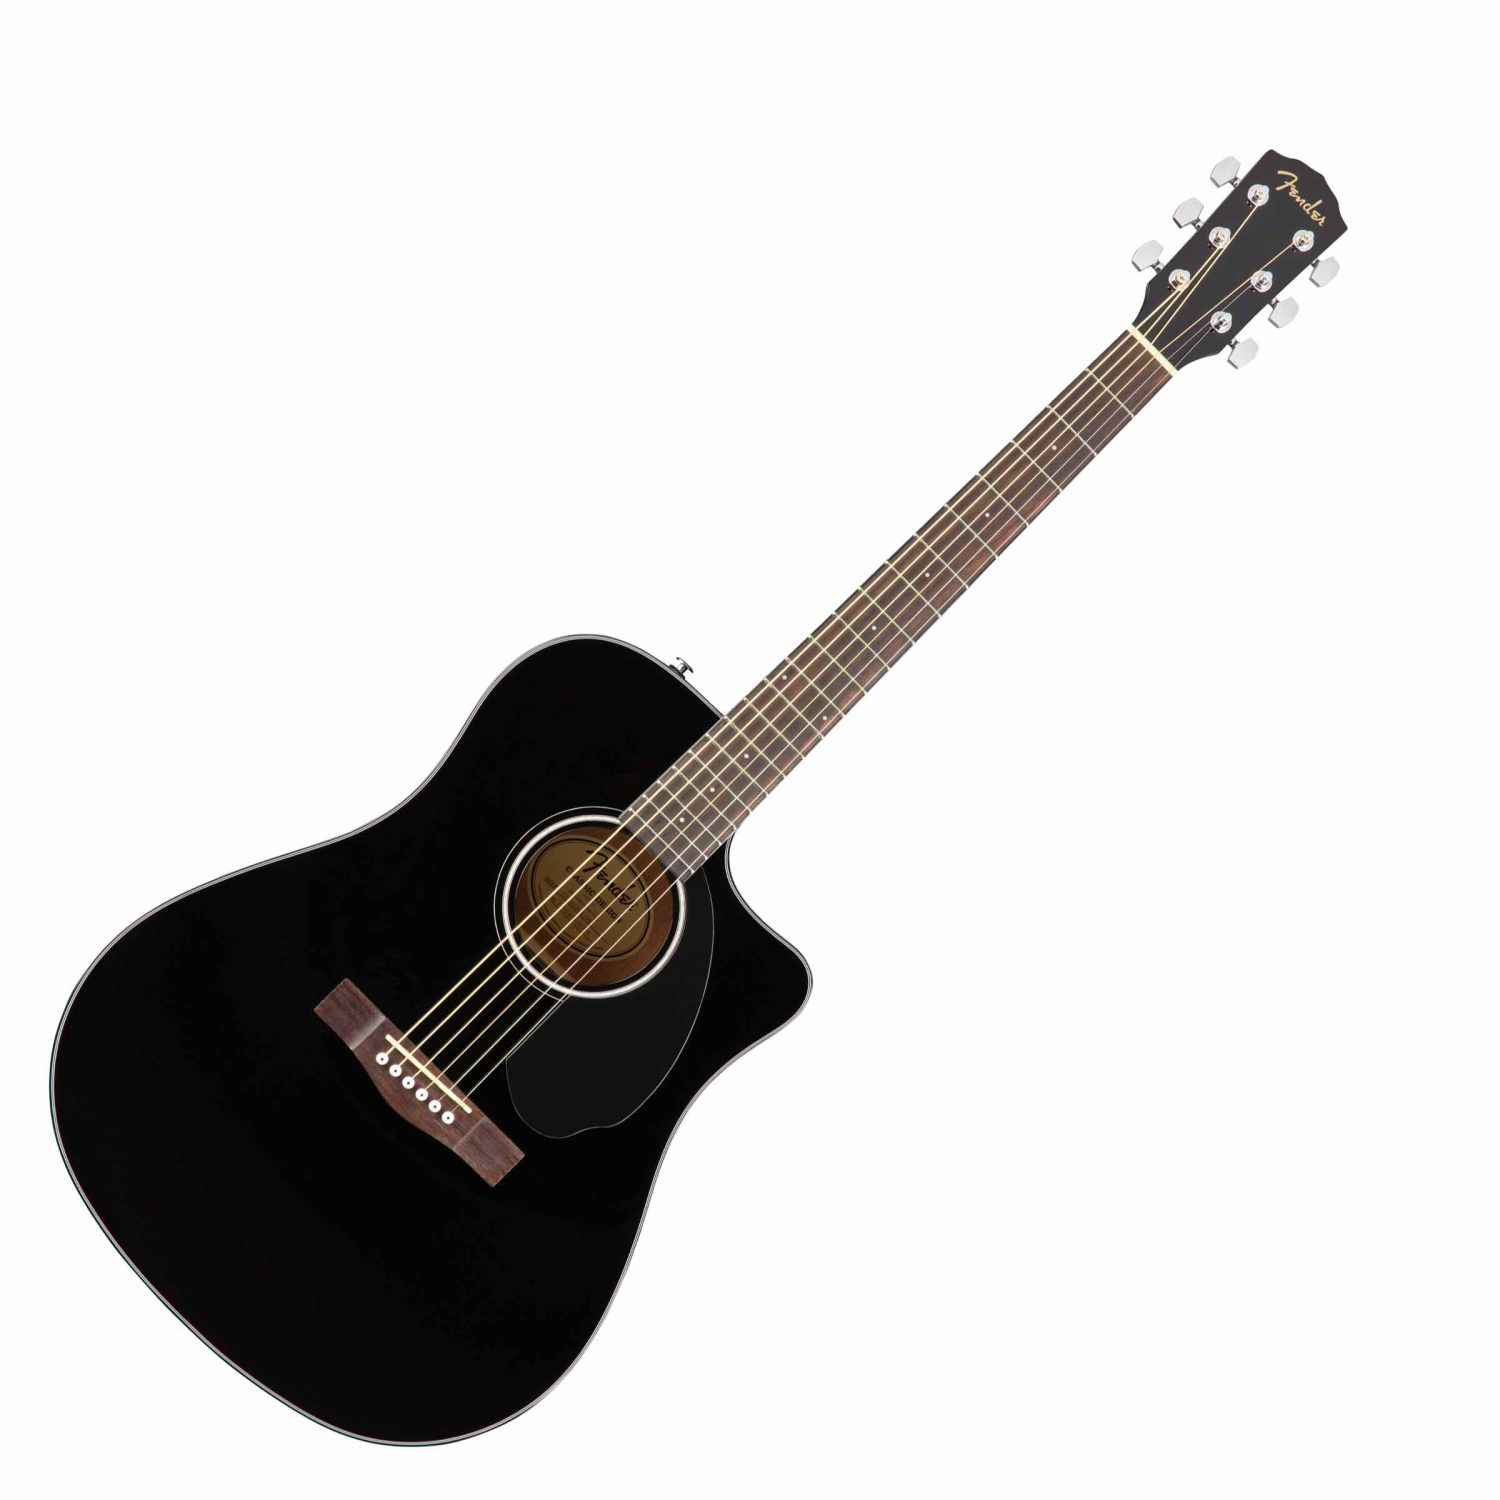 Guitarra Electroacústica CD-60SCE, Black Fender 0970113006